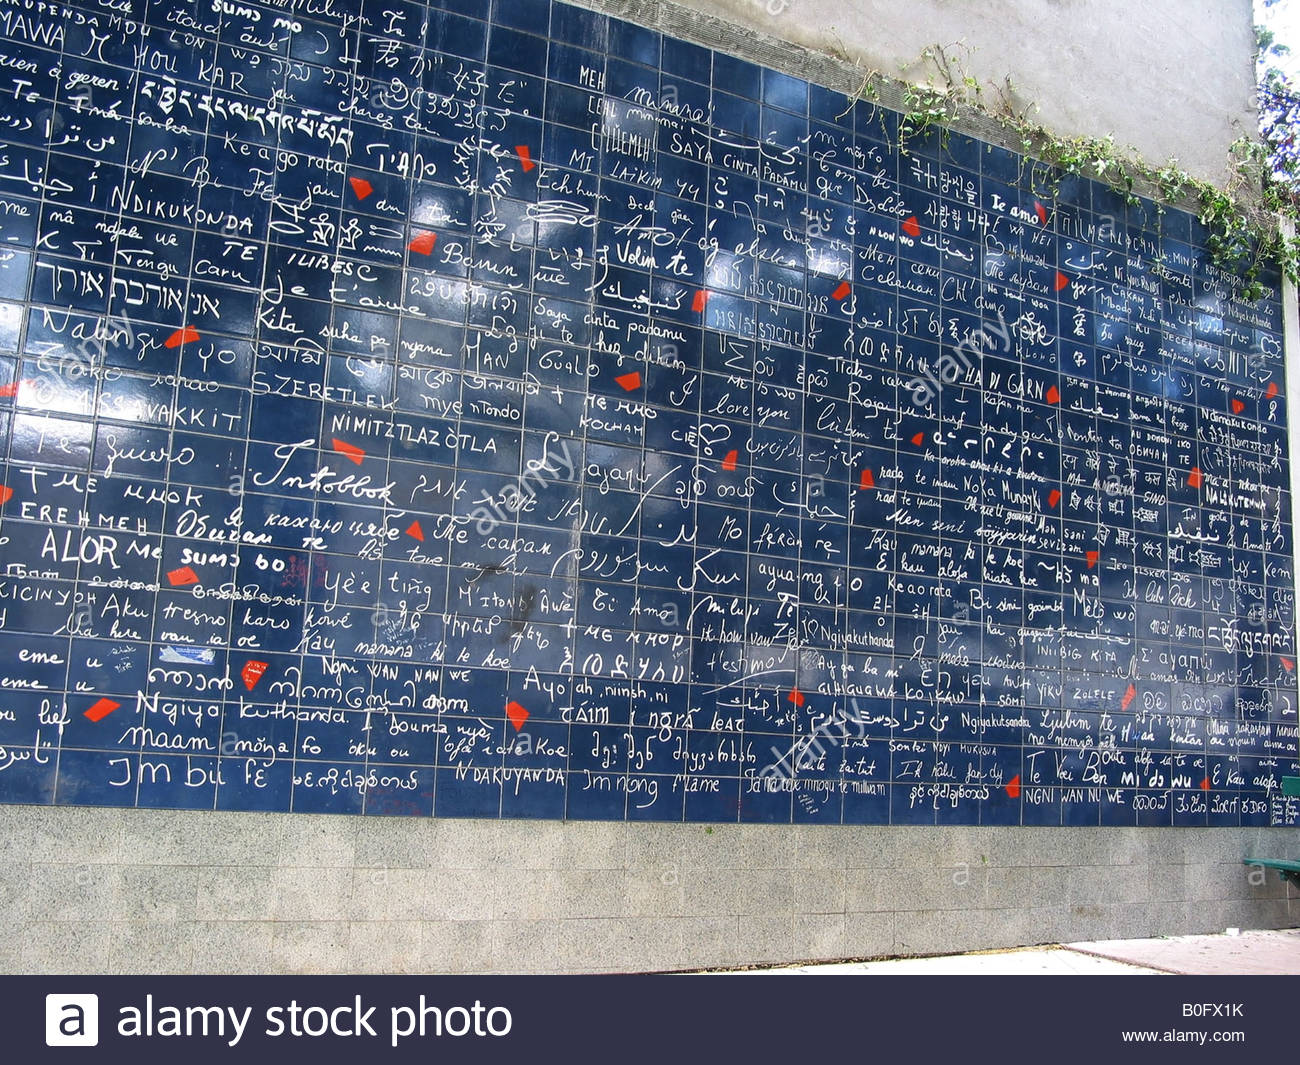 detail of Le Mur Bleu, wall of I love you's Place des Abbesses Paris France (no people) - Stock Image